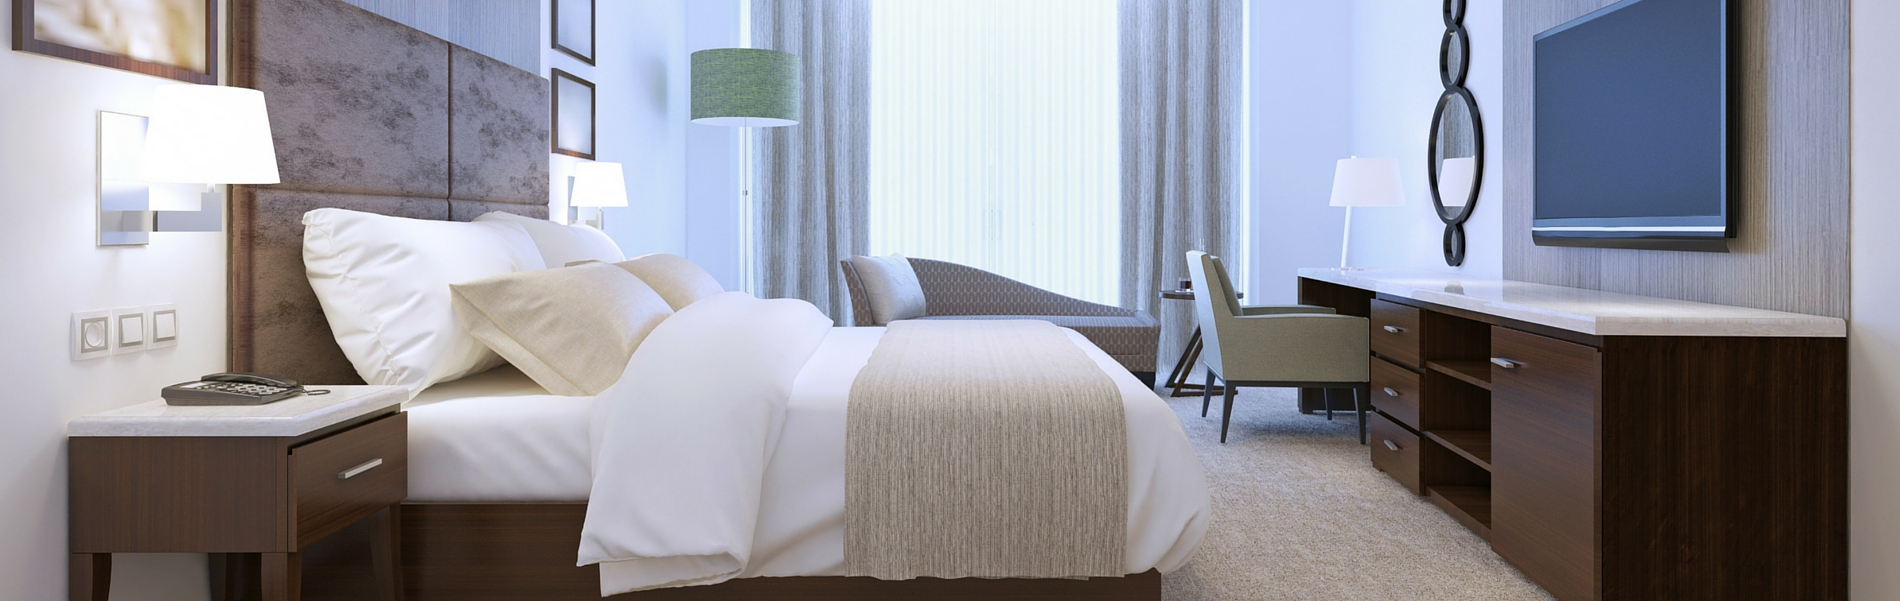 San Jose Hotels   Silicon Valley Hotels